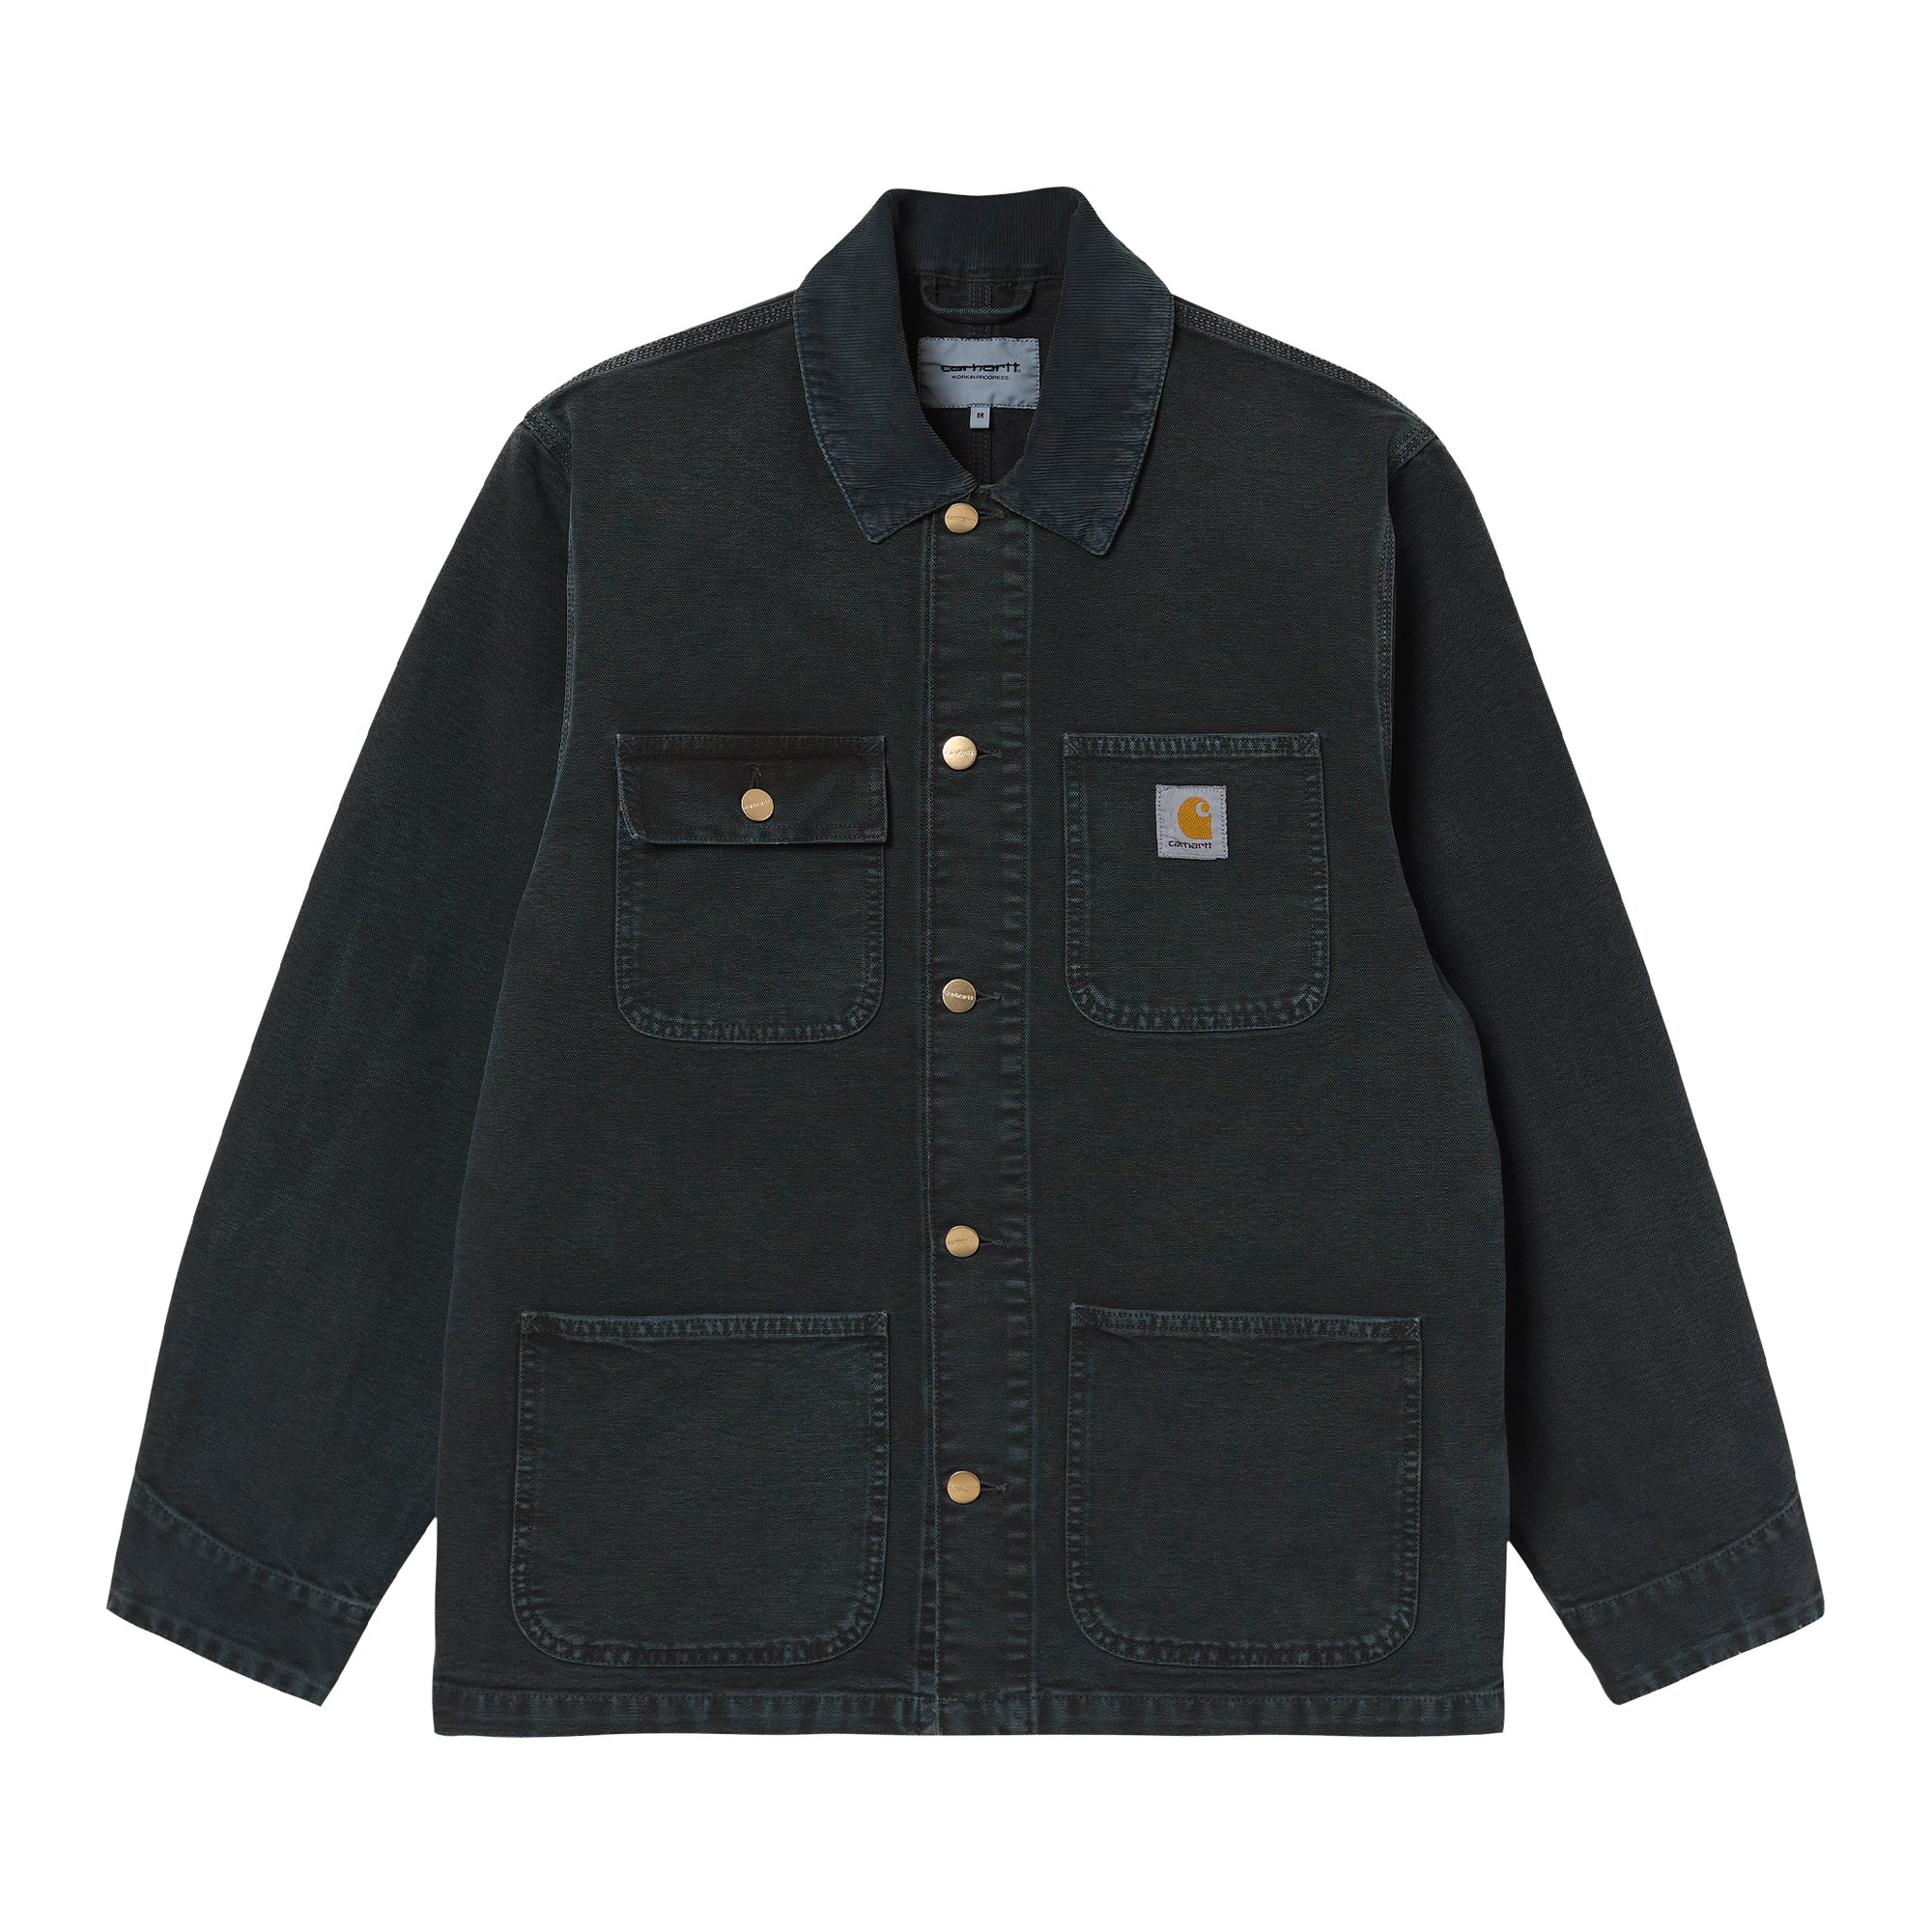 Carhartt WIP Michigan Coat: Black / Black - The Union Project